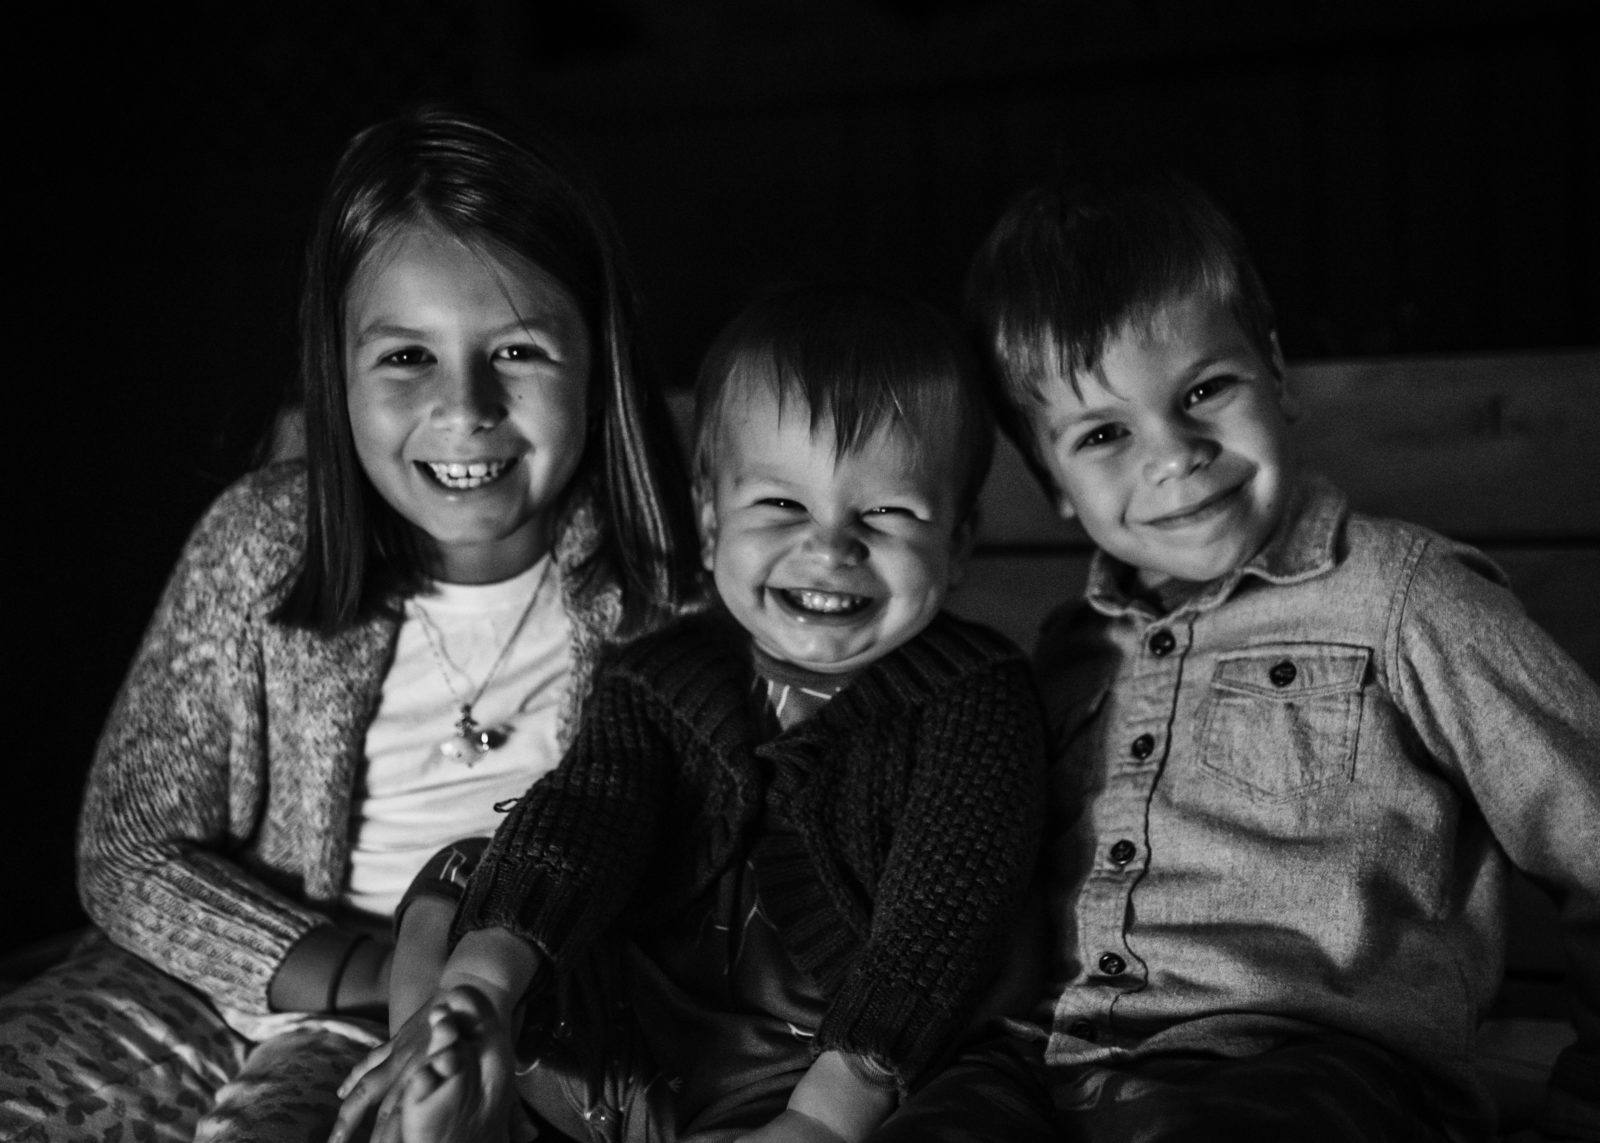 Black and white image of three children smiling at the camera captured in Los Angeles by ArtShaped Photography and Birth Services